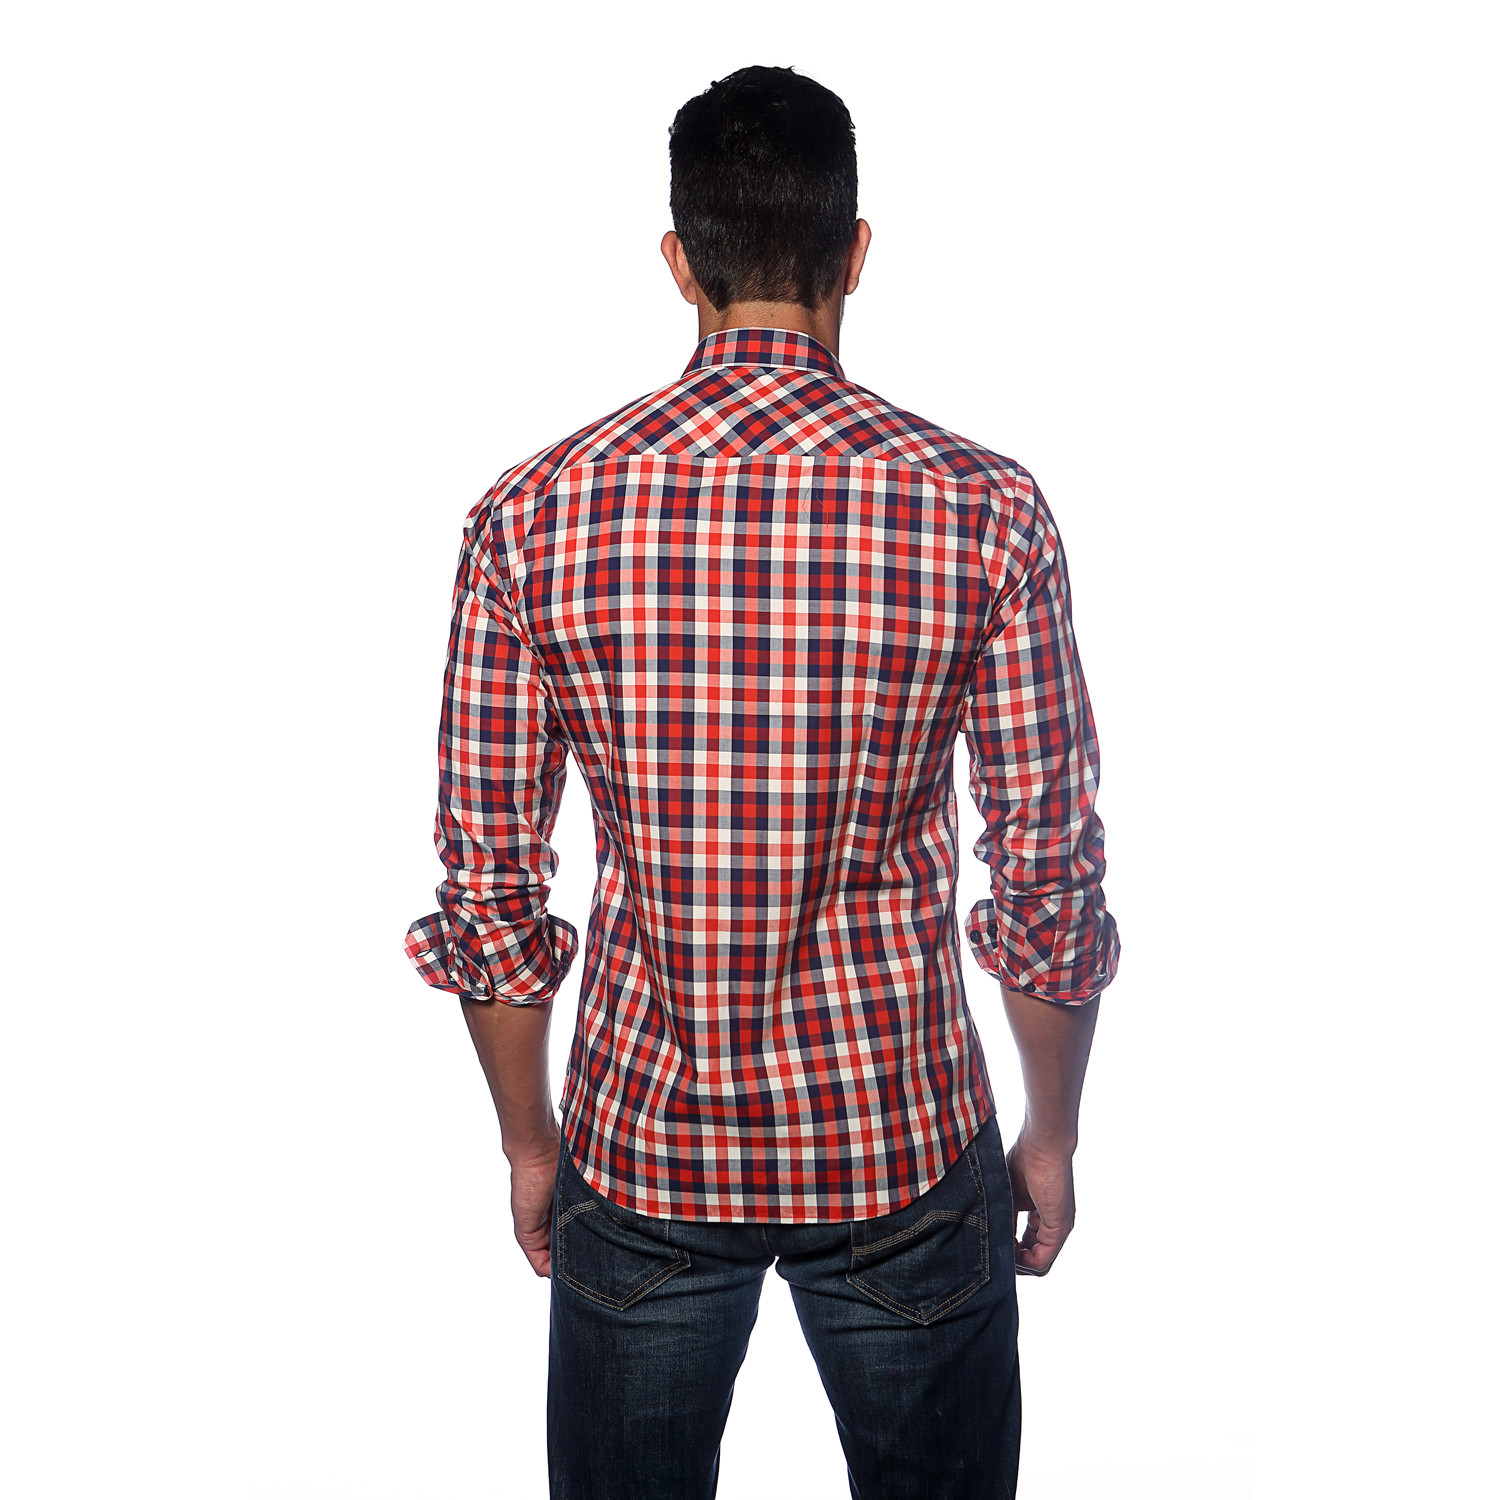 Long sleeve button up shirt red blue white plaid s for Red white and blue plaid shirt